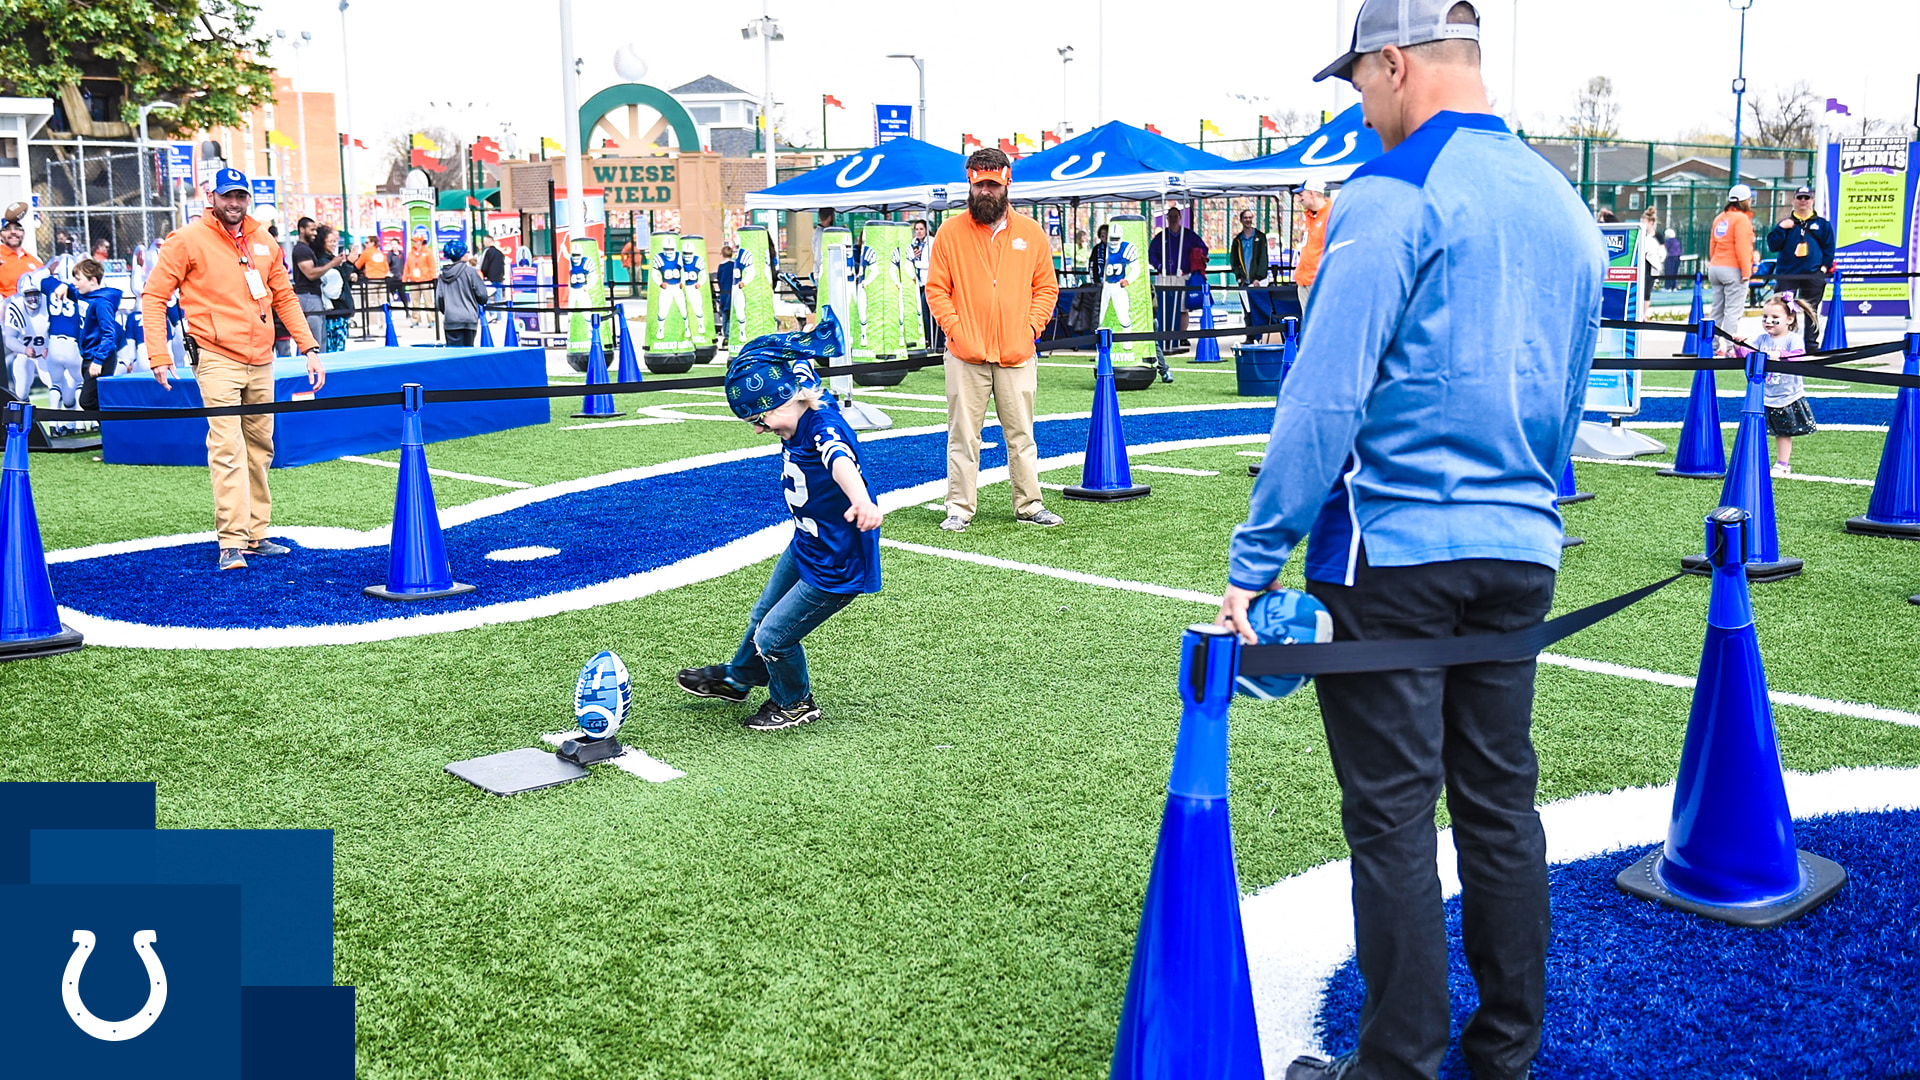 Celebrate 100 seasons of NFL Football with the Colts at the Children's Museum. Admission is FREE!